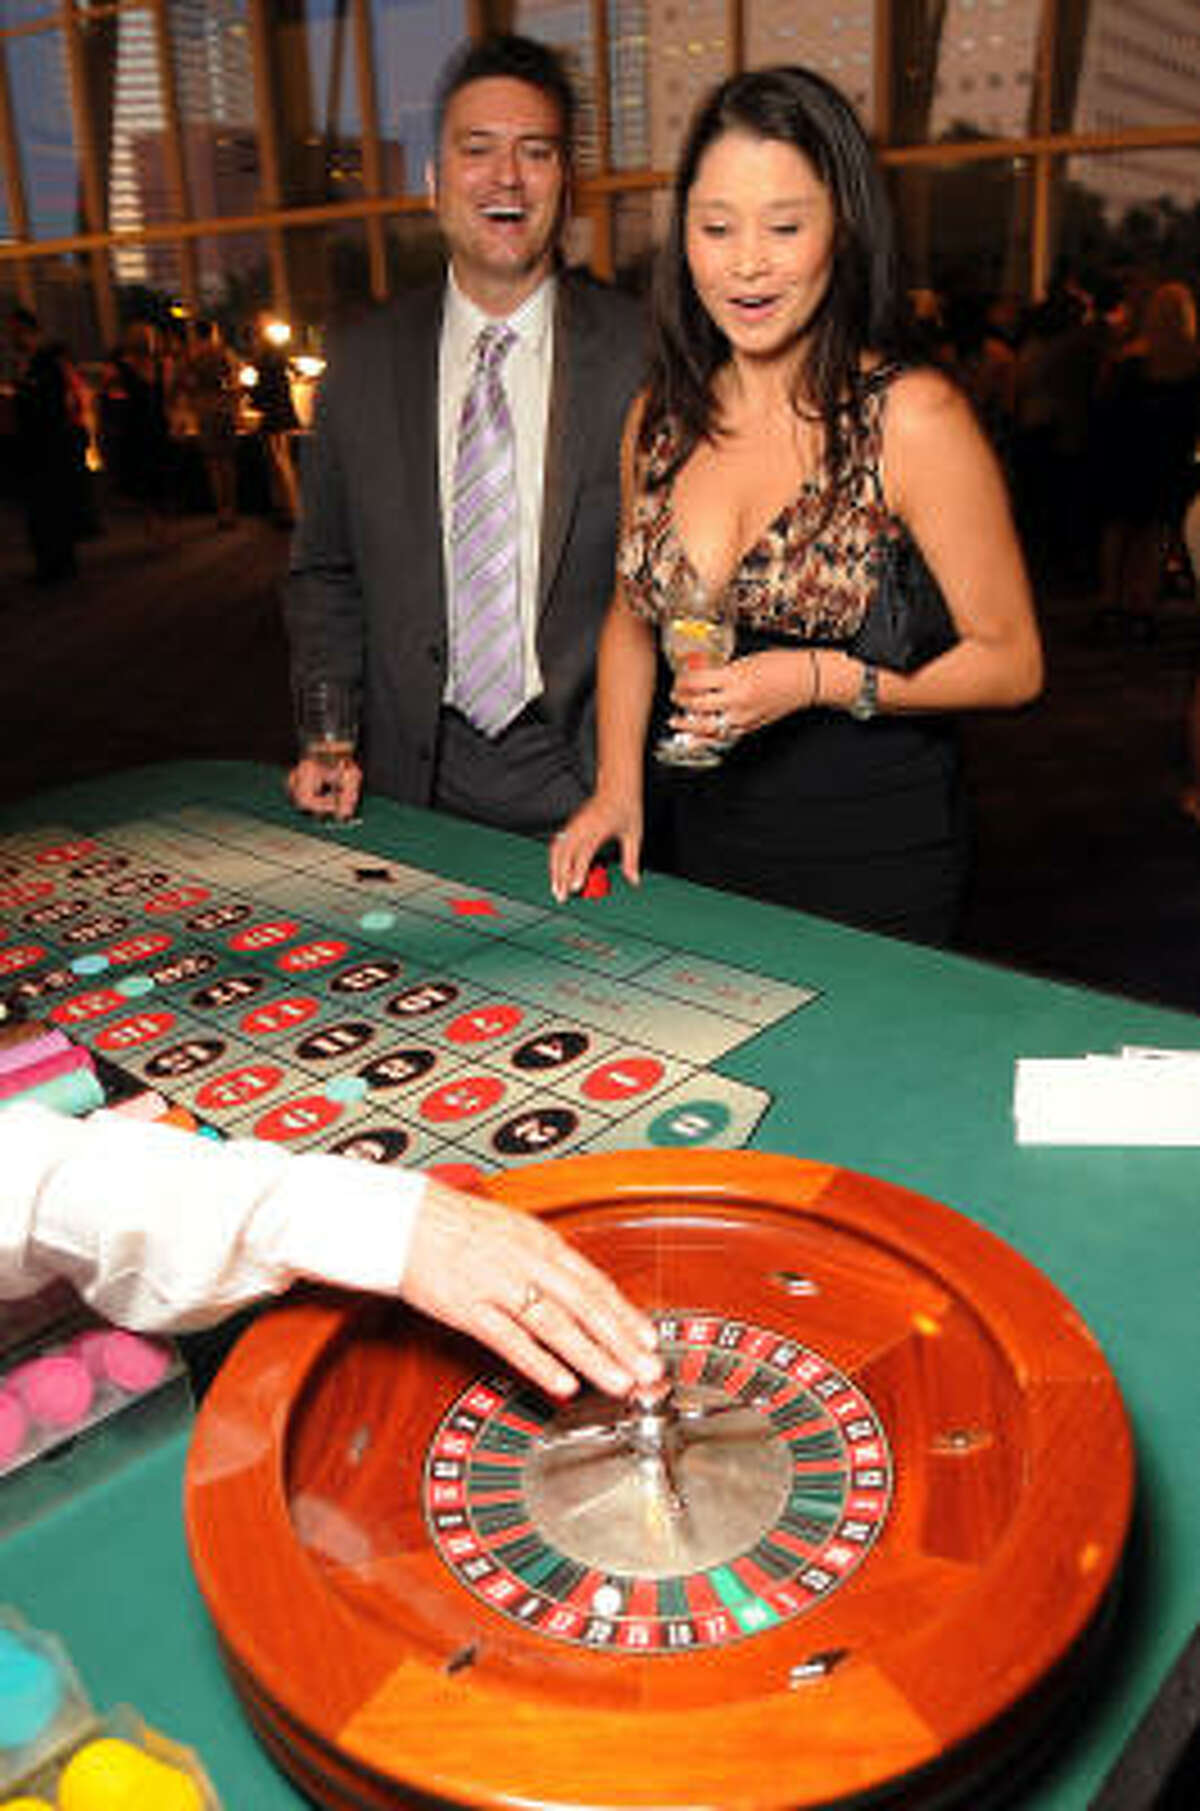 Shawn and Cece Broussard at the Health Museum's Casino Night